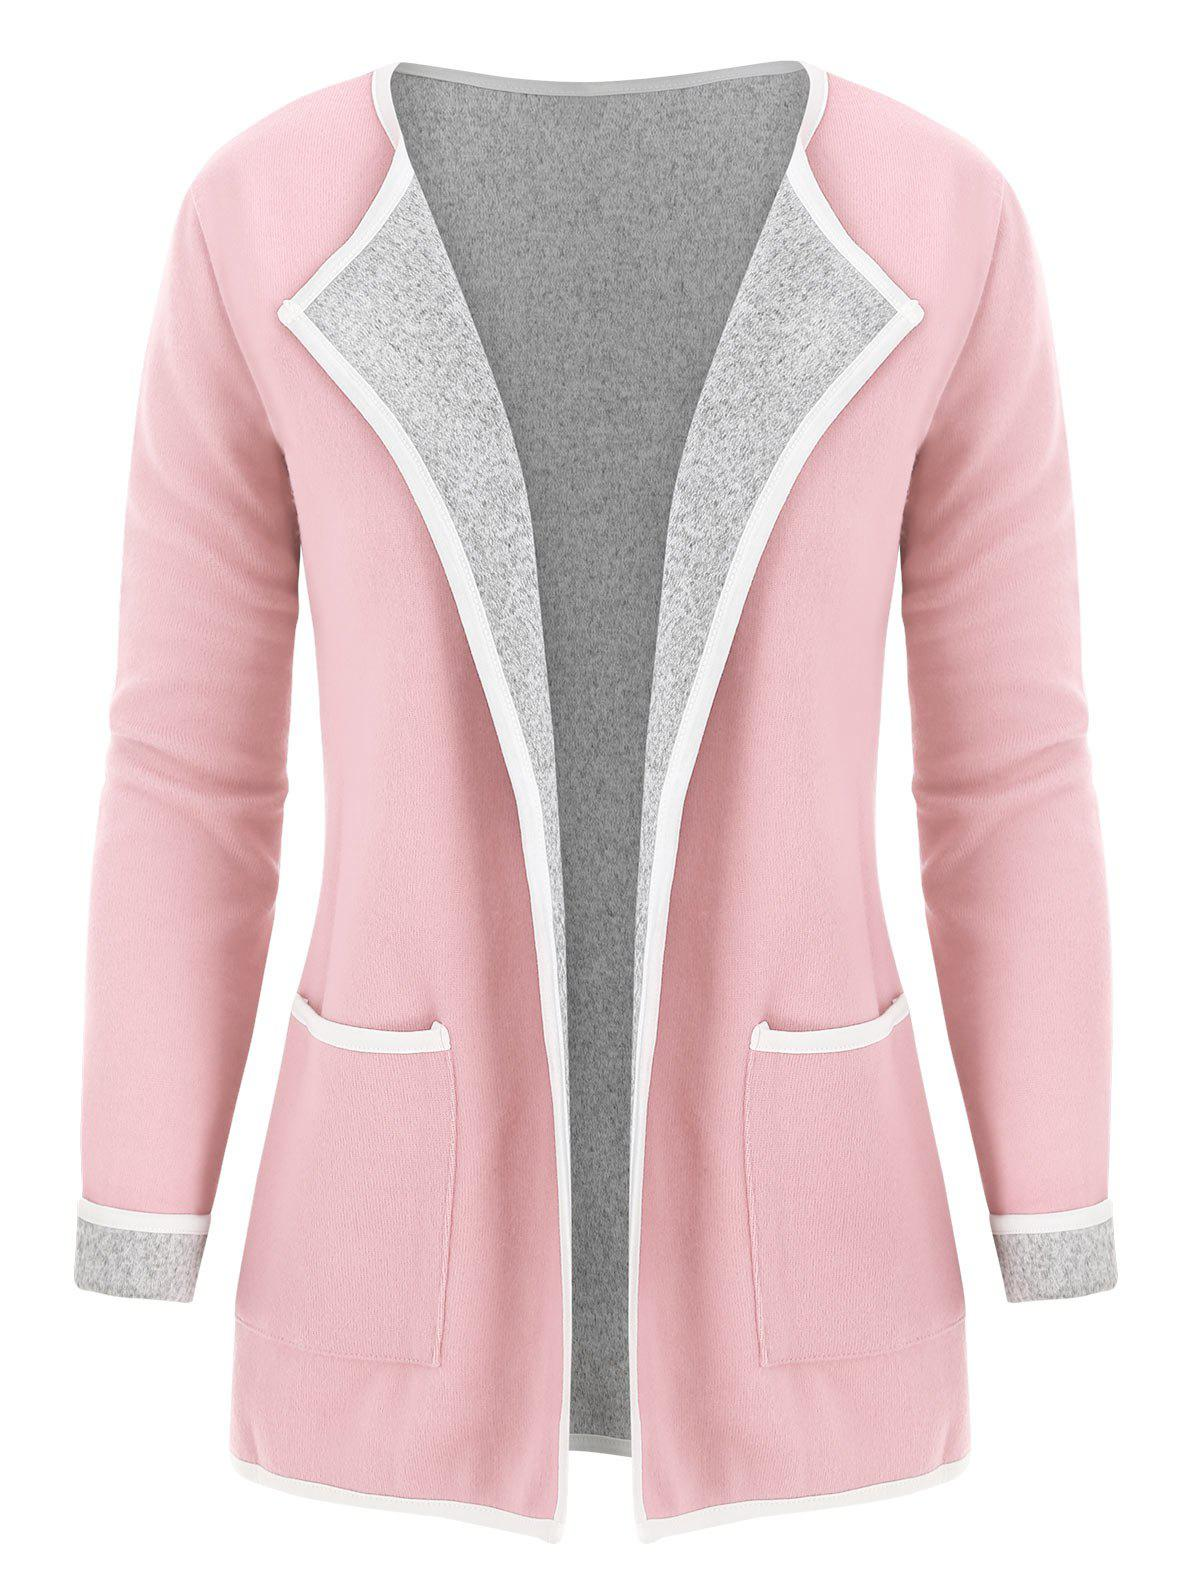 Chic Cuffed Sleeves Heathered Pokcets Cardigan